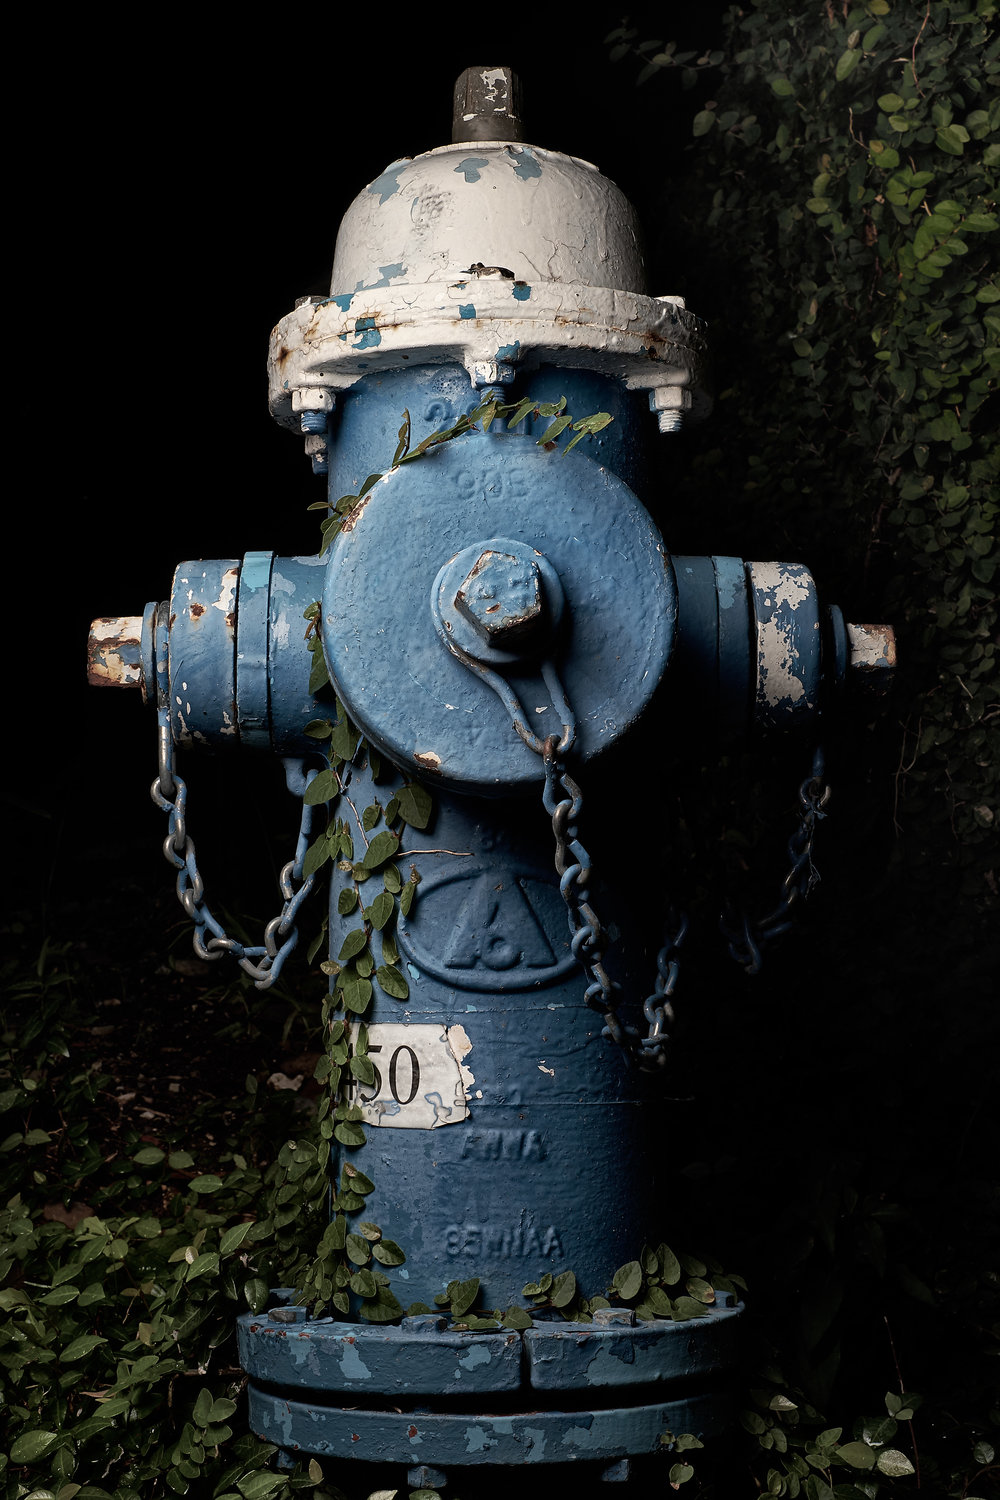 Hydrant Portrait #64